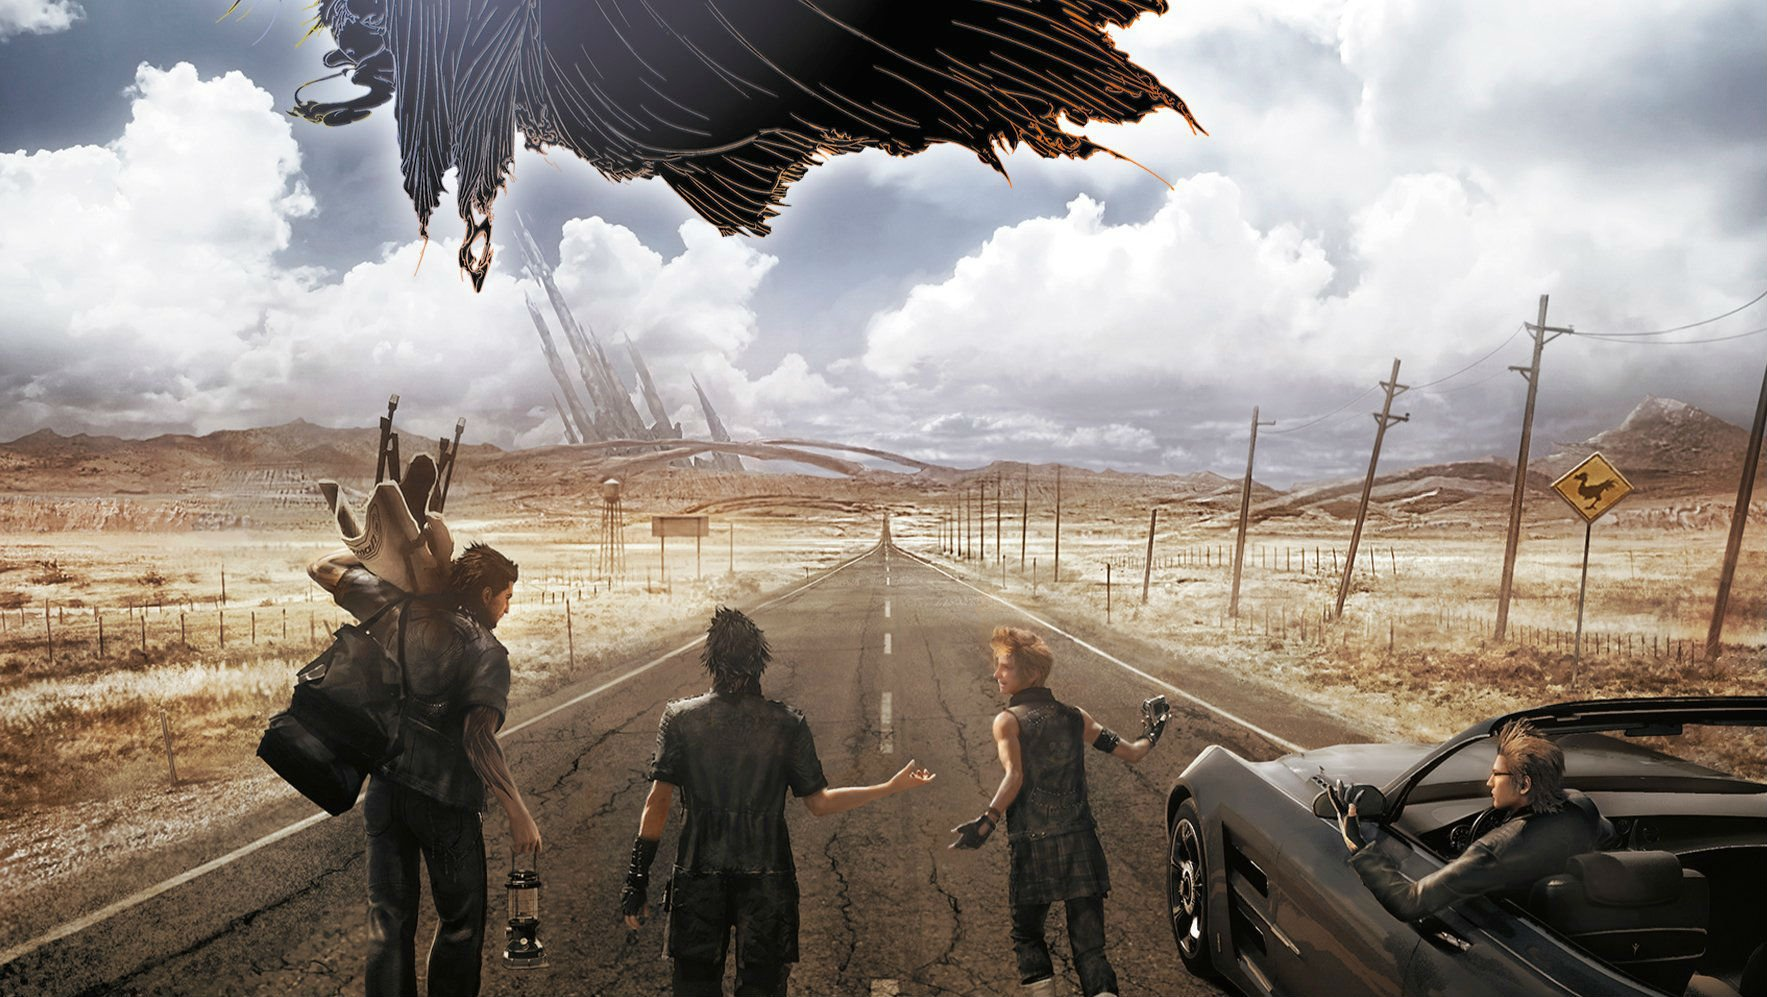 Final Fantasy Xv Wallpaper 78 Images: Final Fantasy XV Wallpaper And Background Image